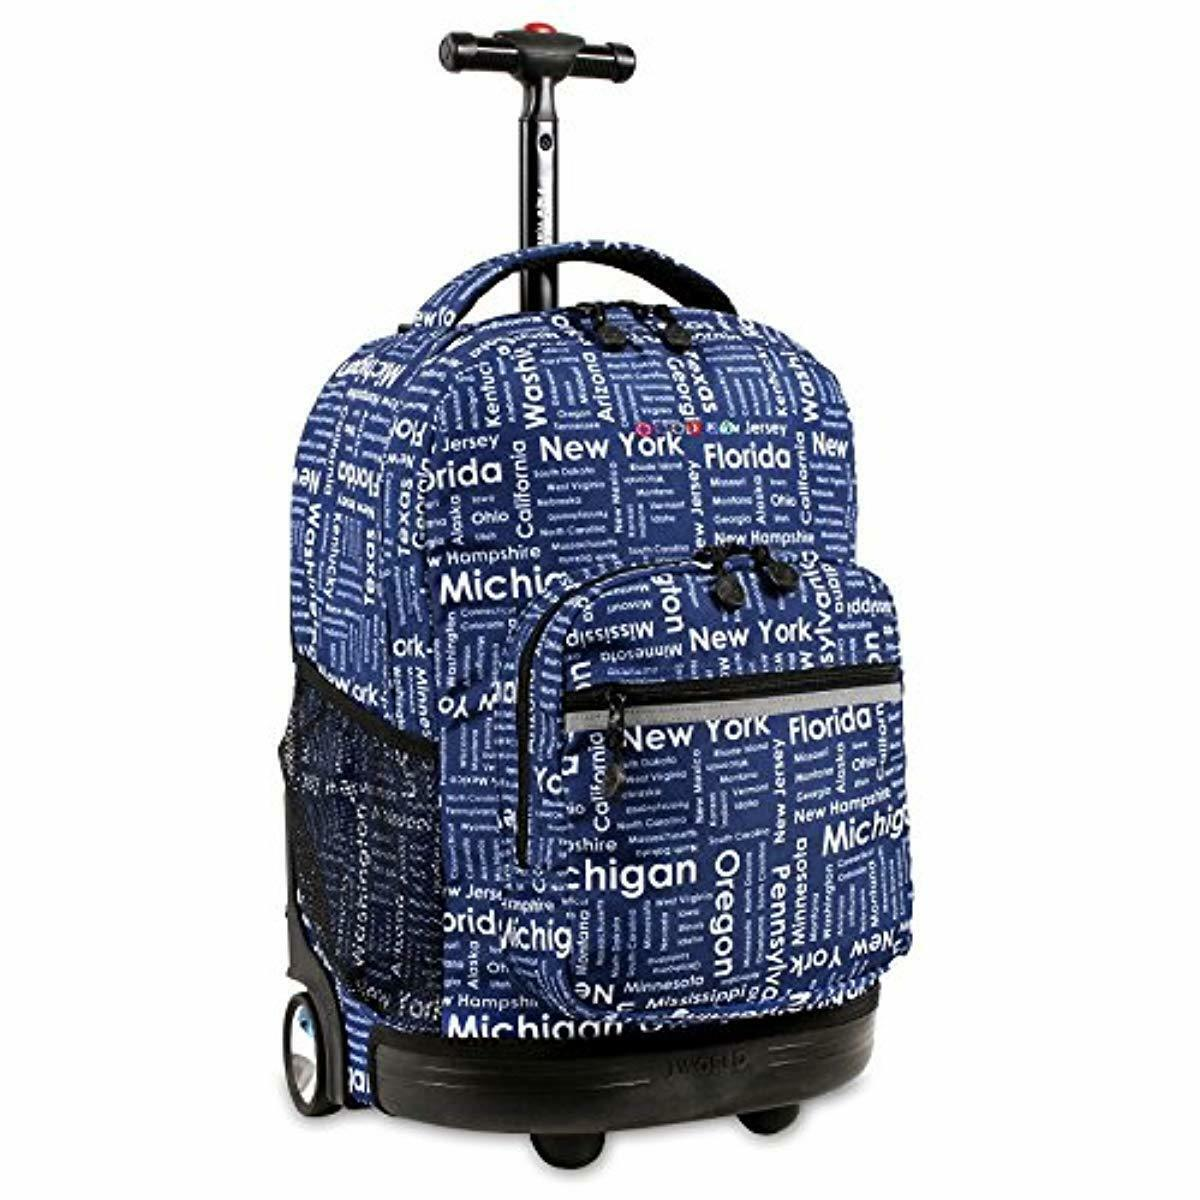 Rolling Backpack For Boys Kids School Bag With Wheels Blue P